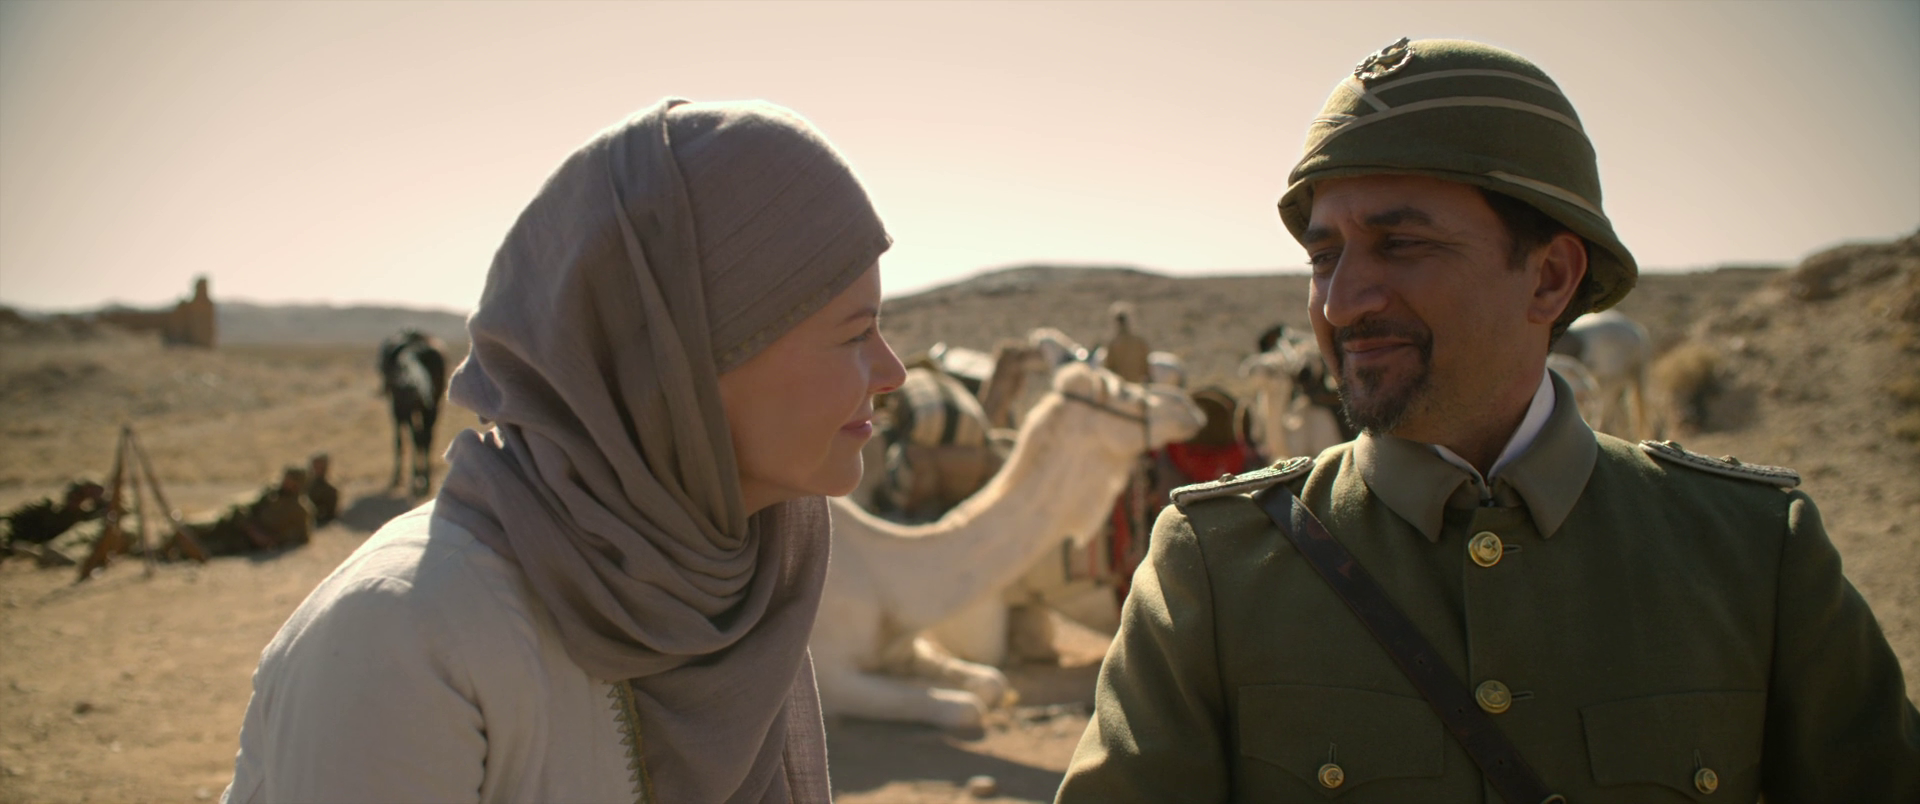 Queen of the Desert (2016) BluRay 1080p DTS-HD MA 5.1 x264-EPiC